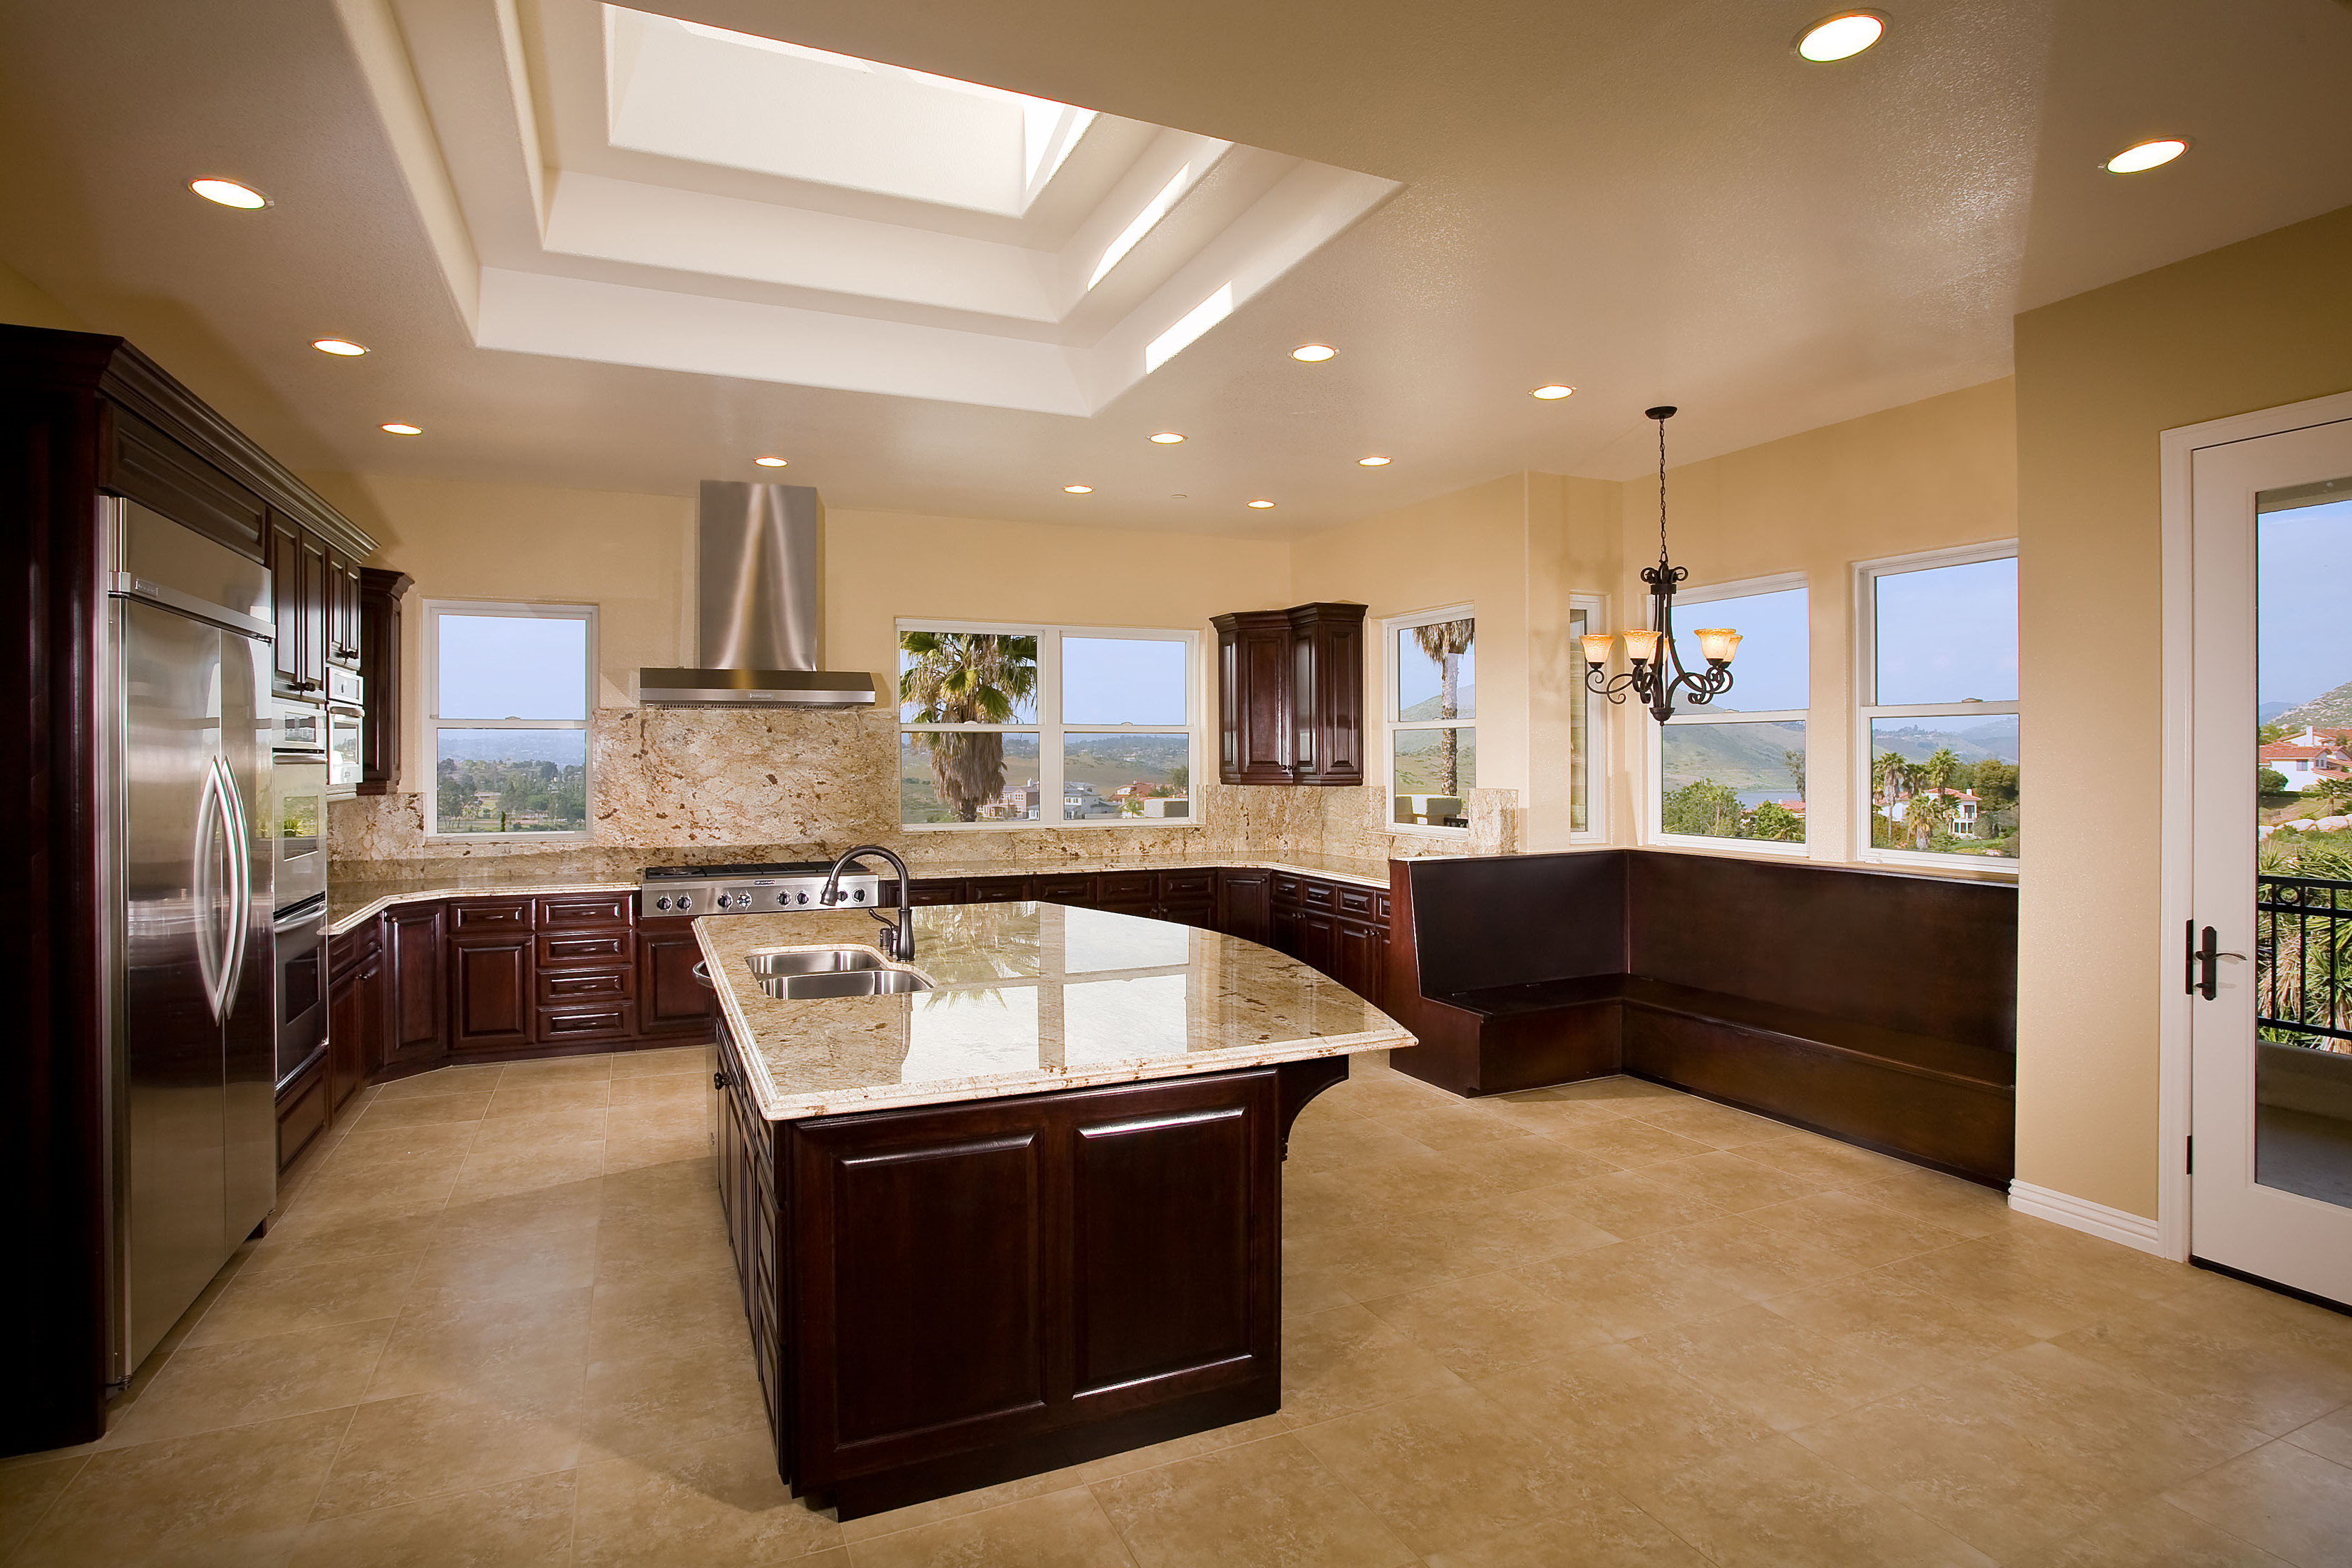 LRO_Oceanside_Kitchen_2790-11x8v3